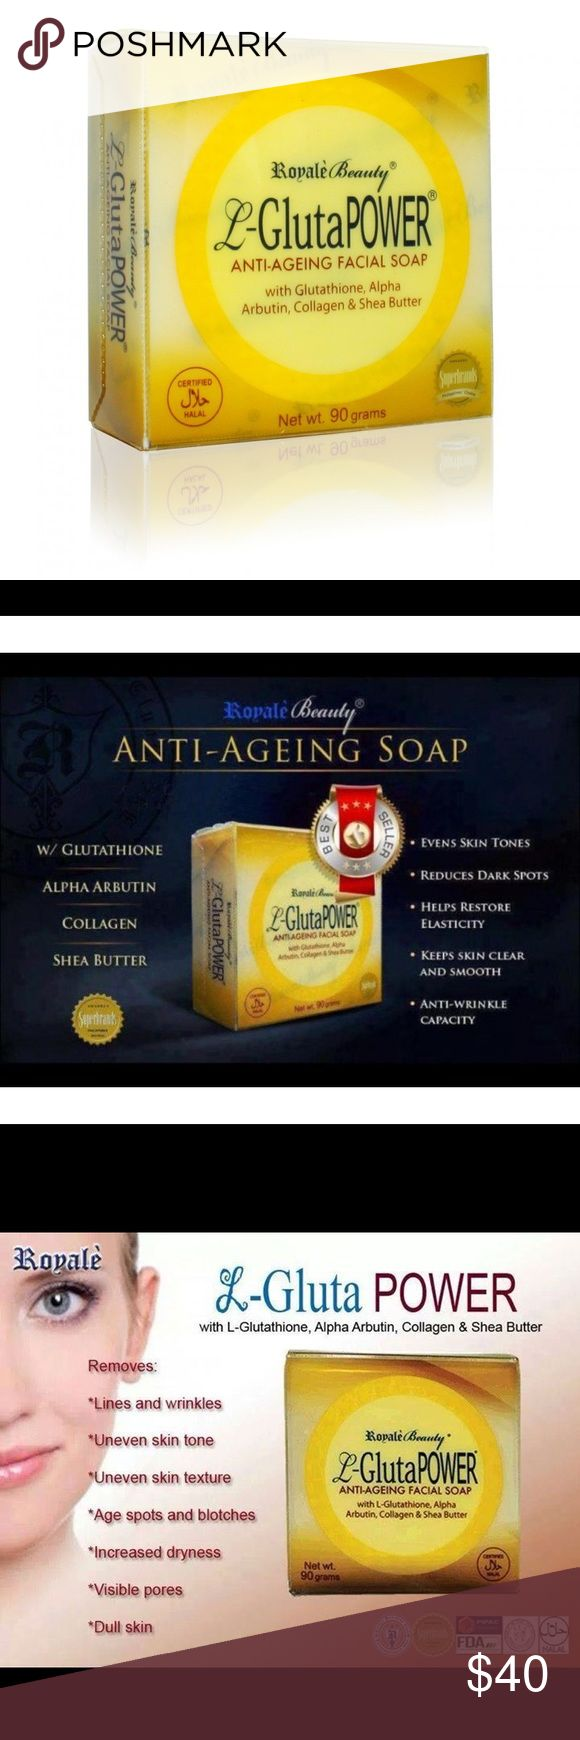 Royale L-Gluta Power Anti Aging Facial Soap 3 Pcs. L Gluta Power Contains: Alpha Arbutin - Even out skin tone and helps reduce appearance of dark spots Collagen - Supports the physical resistance and elasticity of skin cells to make it firm looking Shea Butter - Rich with Vitamin A, E & F that nourishes and moisturizes the skin in making it clear, smooth & soft & Other Stories Other